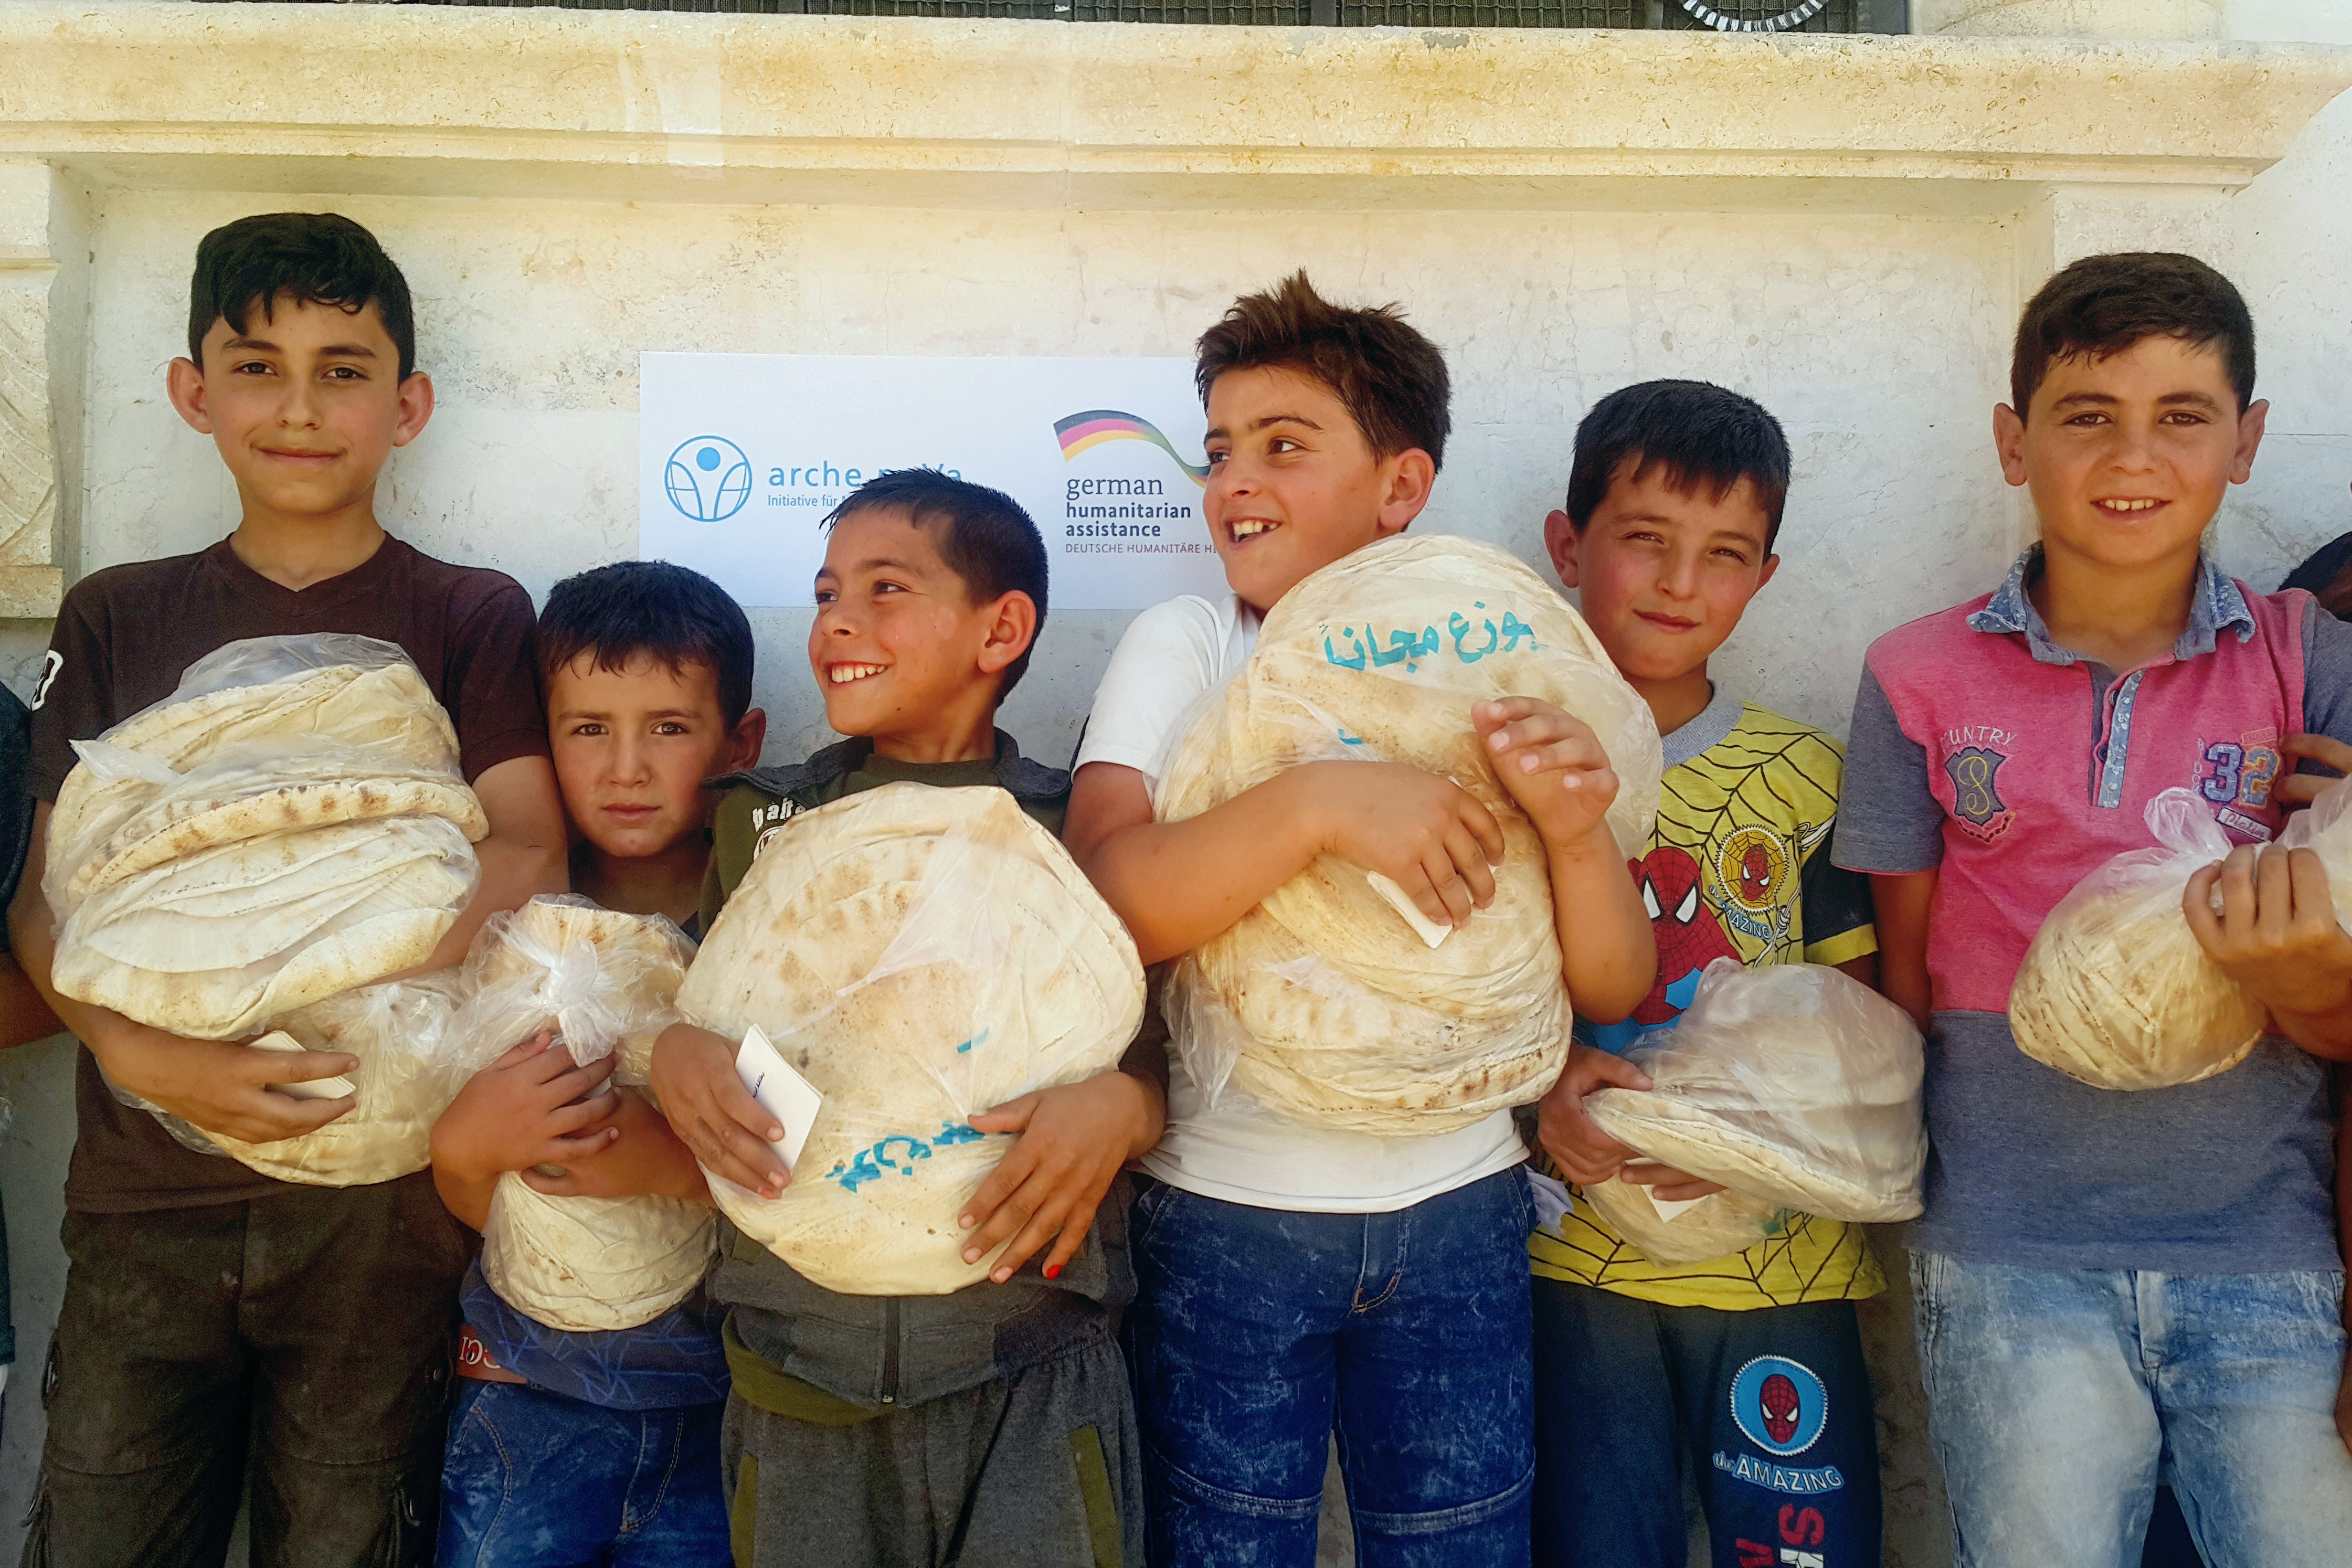 Boys stand in line. They hold packages of bread in front of their chest.